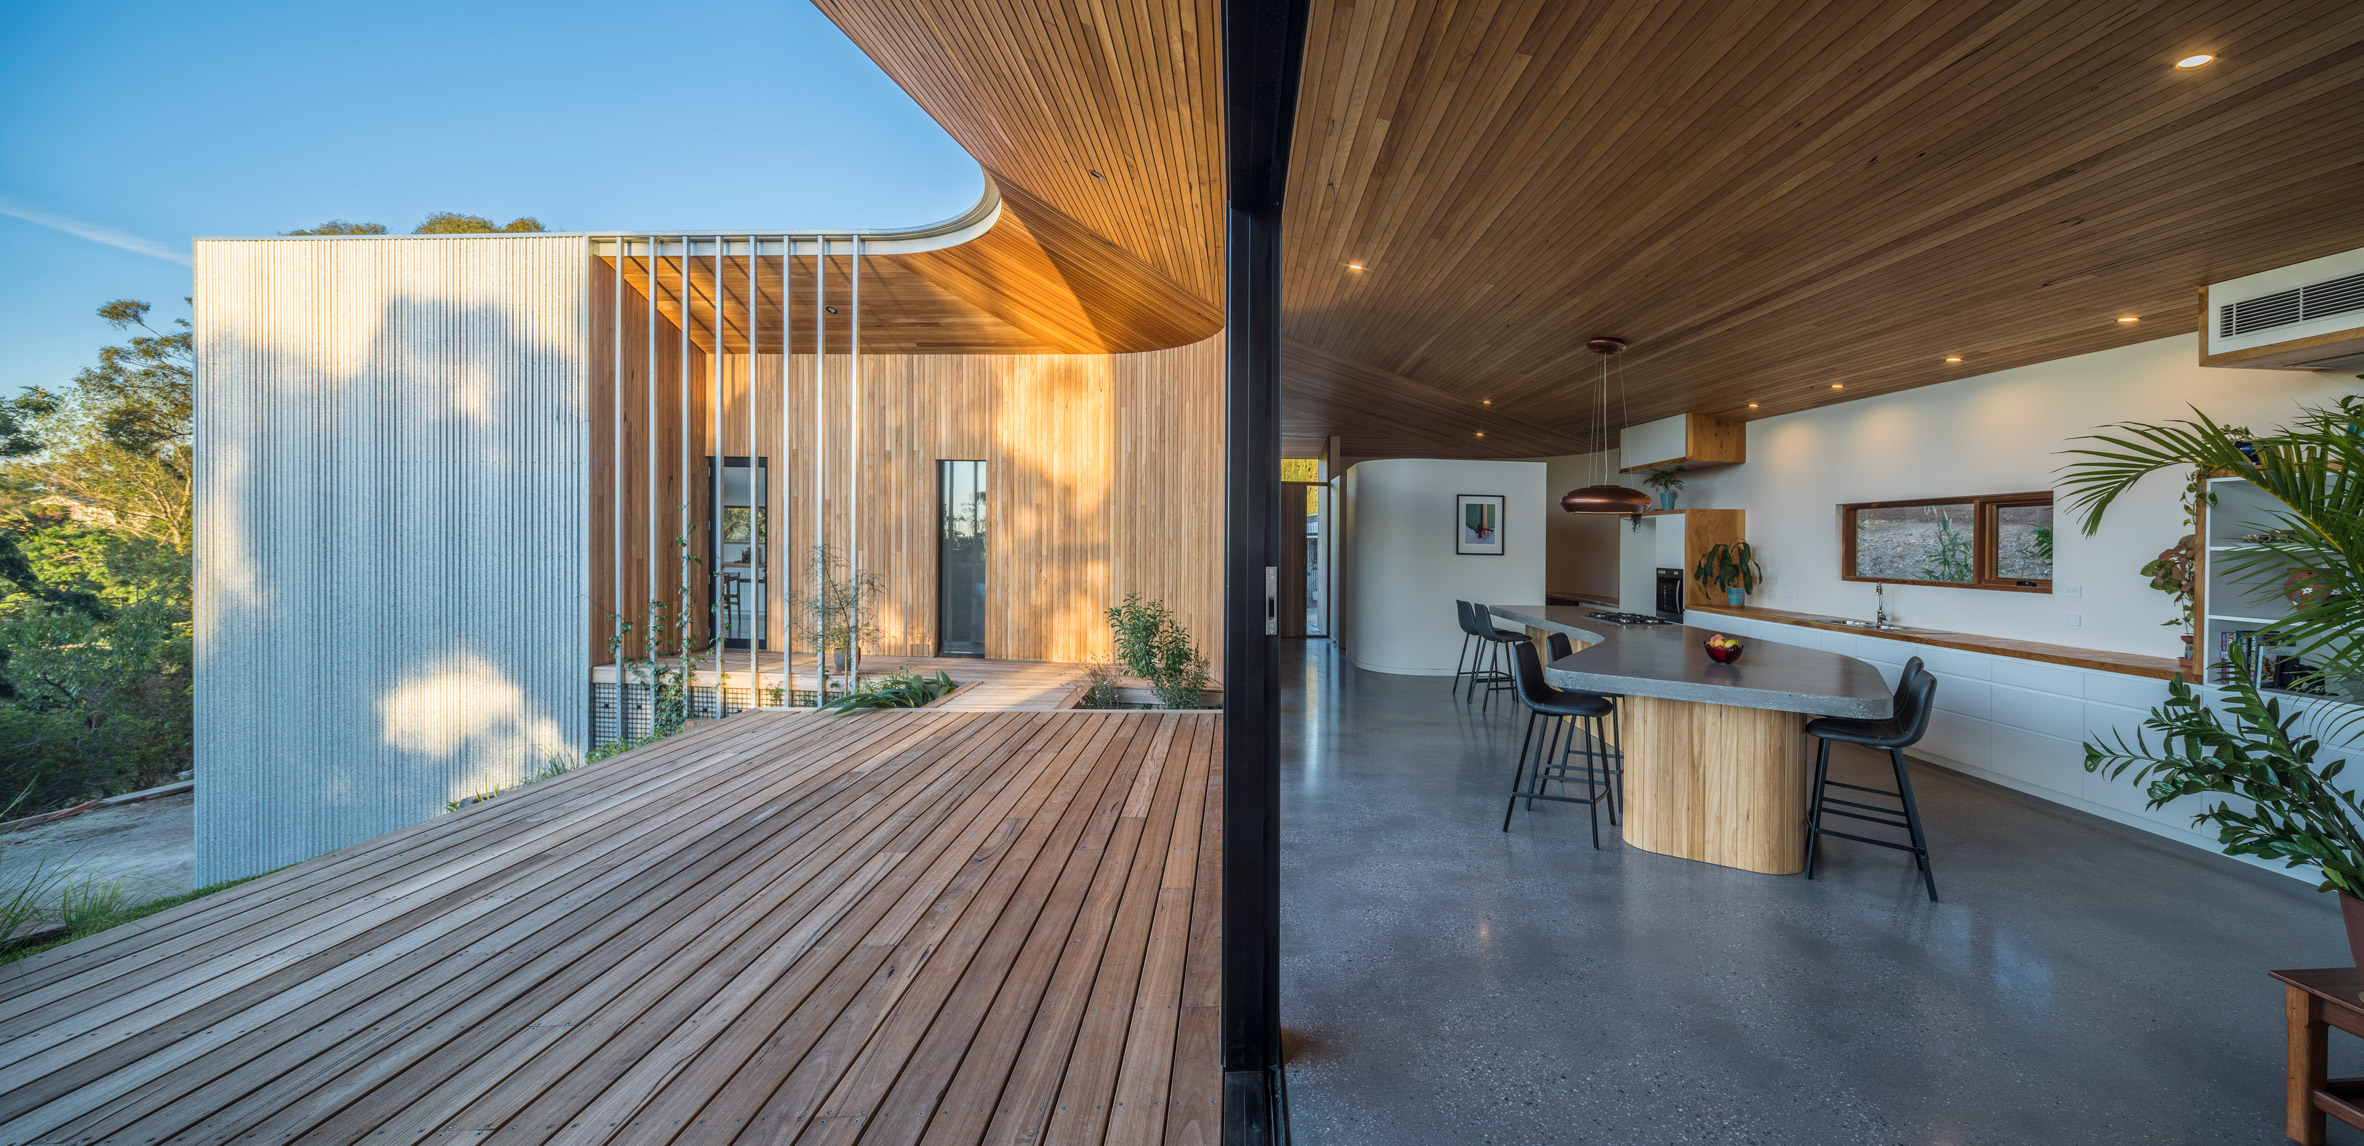 Inside and outside of Willunga House by Reuben French-Kennedy